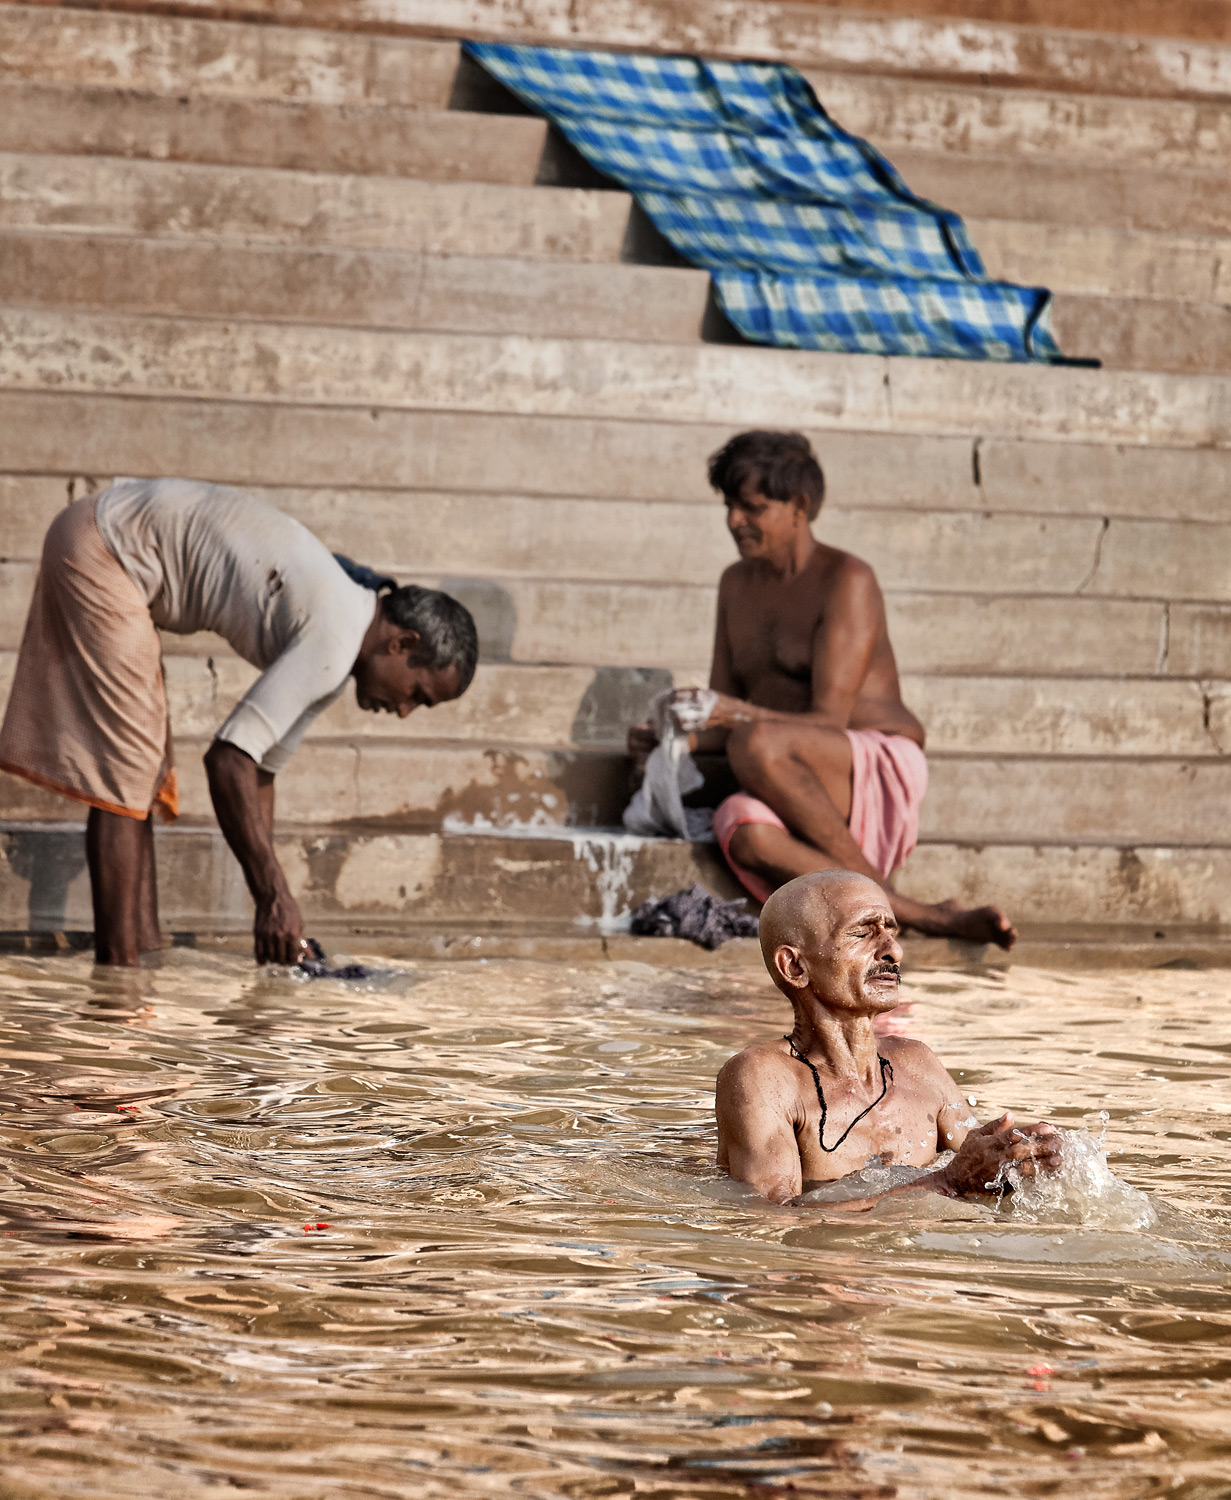 The sacred and the profane, Varanasi, India